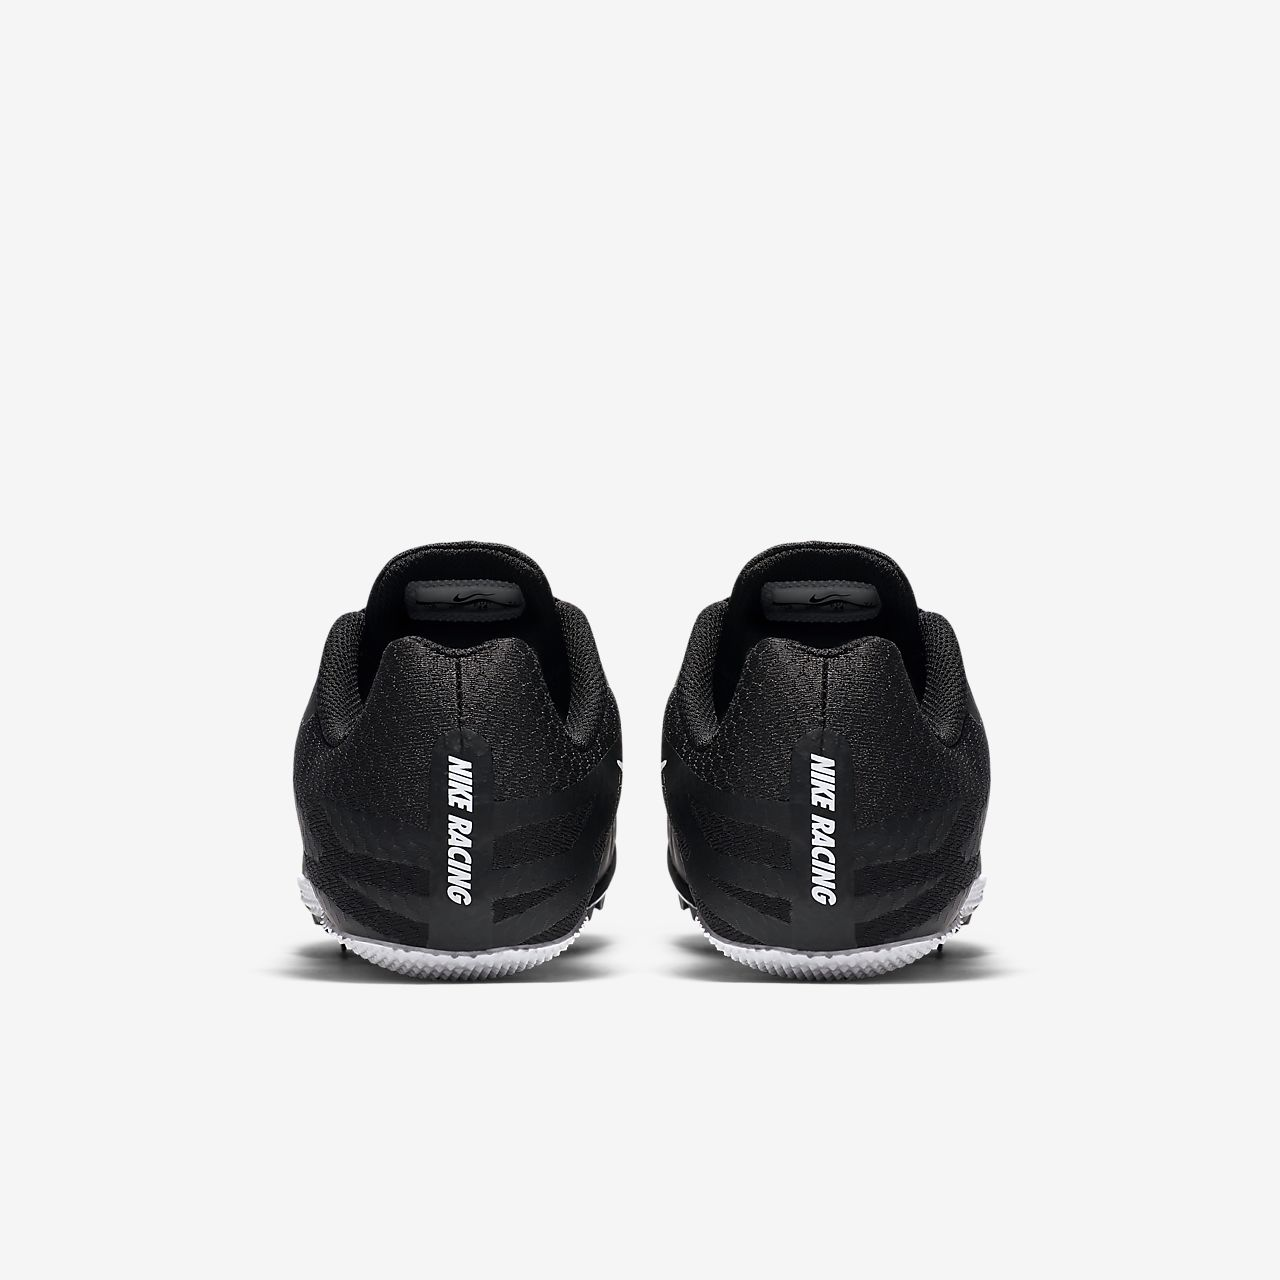 info for 10858 decc2 ... Nike Zoom Rival S 9 Unisex Track Spike